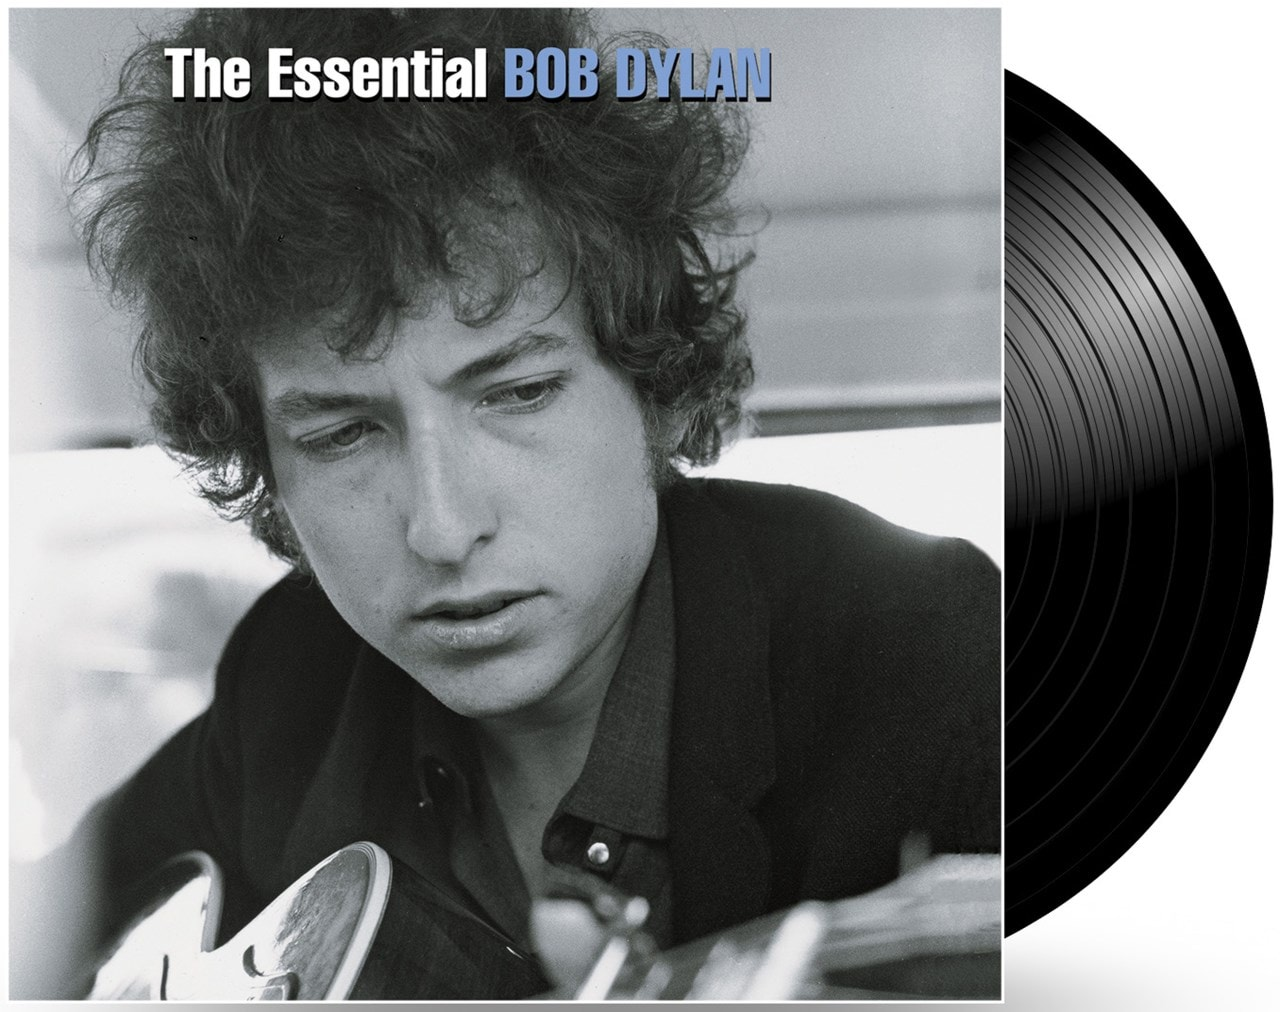 The Essential Bob Dylan - 2